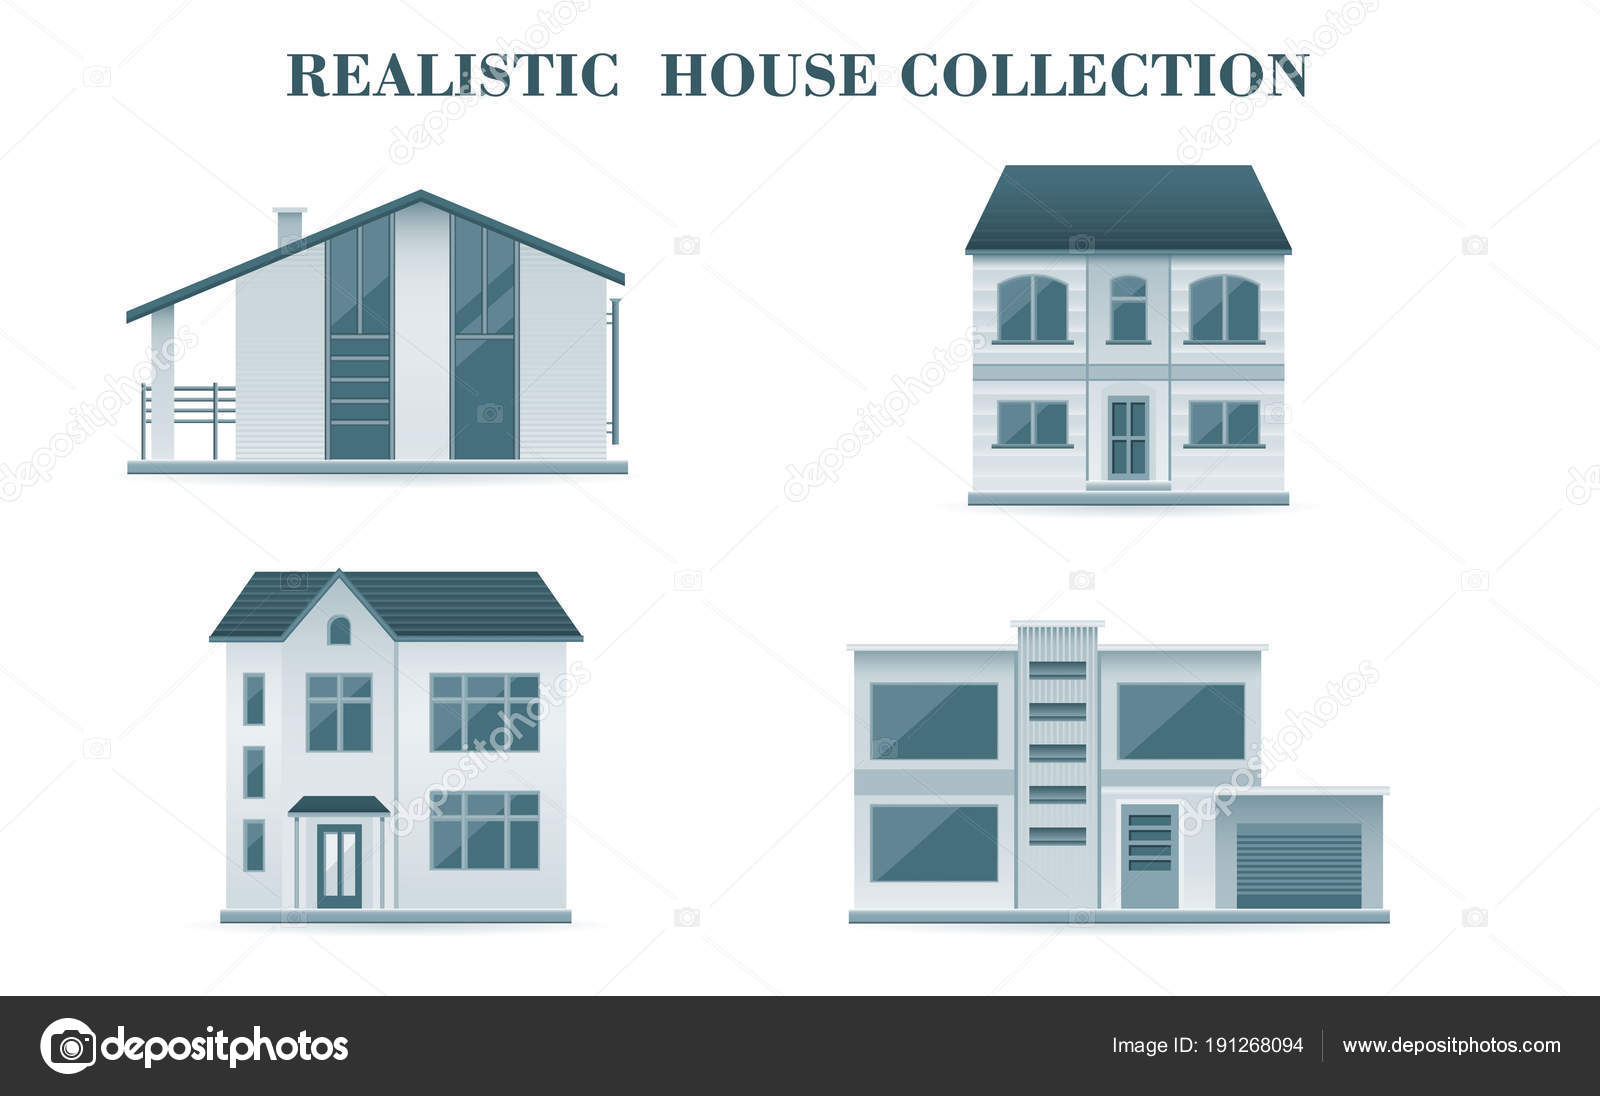 Set of houses, residential house, realistic house with a ... Realistic House Design Siding on house framing designs, house carports designs, shake siding designs, house stucco designs, patios designs, metal siding designs, stone siding designs, cedar siding designs, rustic home exterior designs, masonite siding designs, house steps designs, house chimney designs, modern siding designs, cottage siding designs, mobile home siding designs, home repair designs, house garage designs, house beams designs, hardie siding designs, house plastering designs,